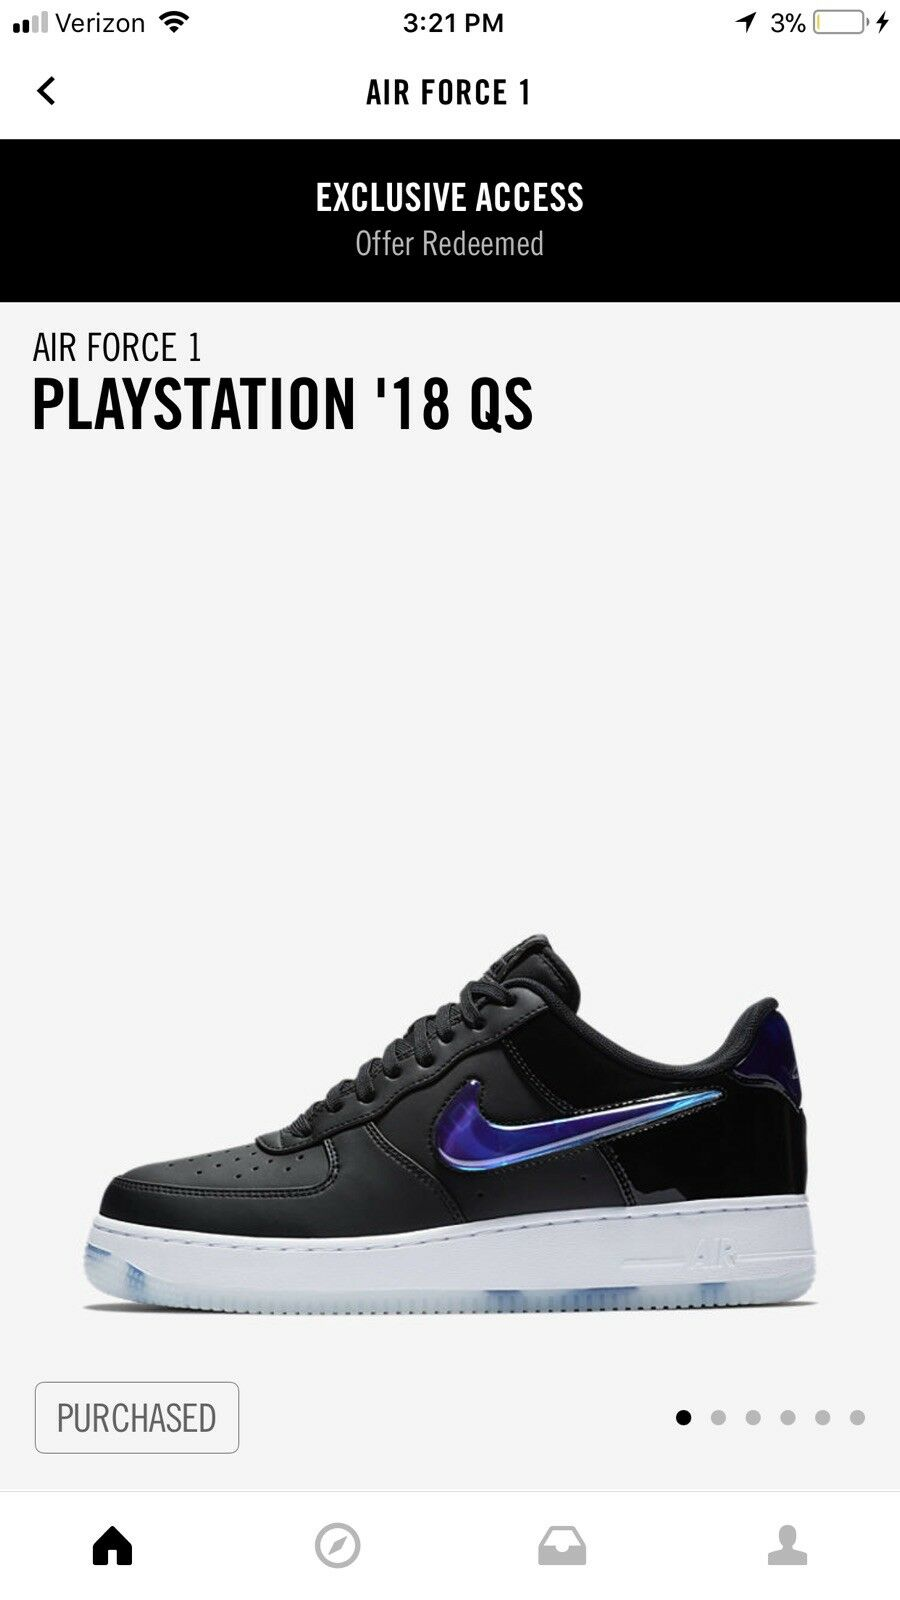 nike air force 9 1 playstation größe 9 force 2018 e3 123f46